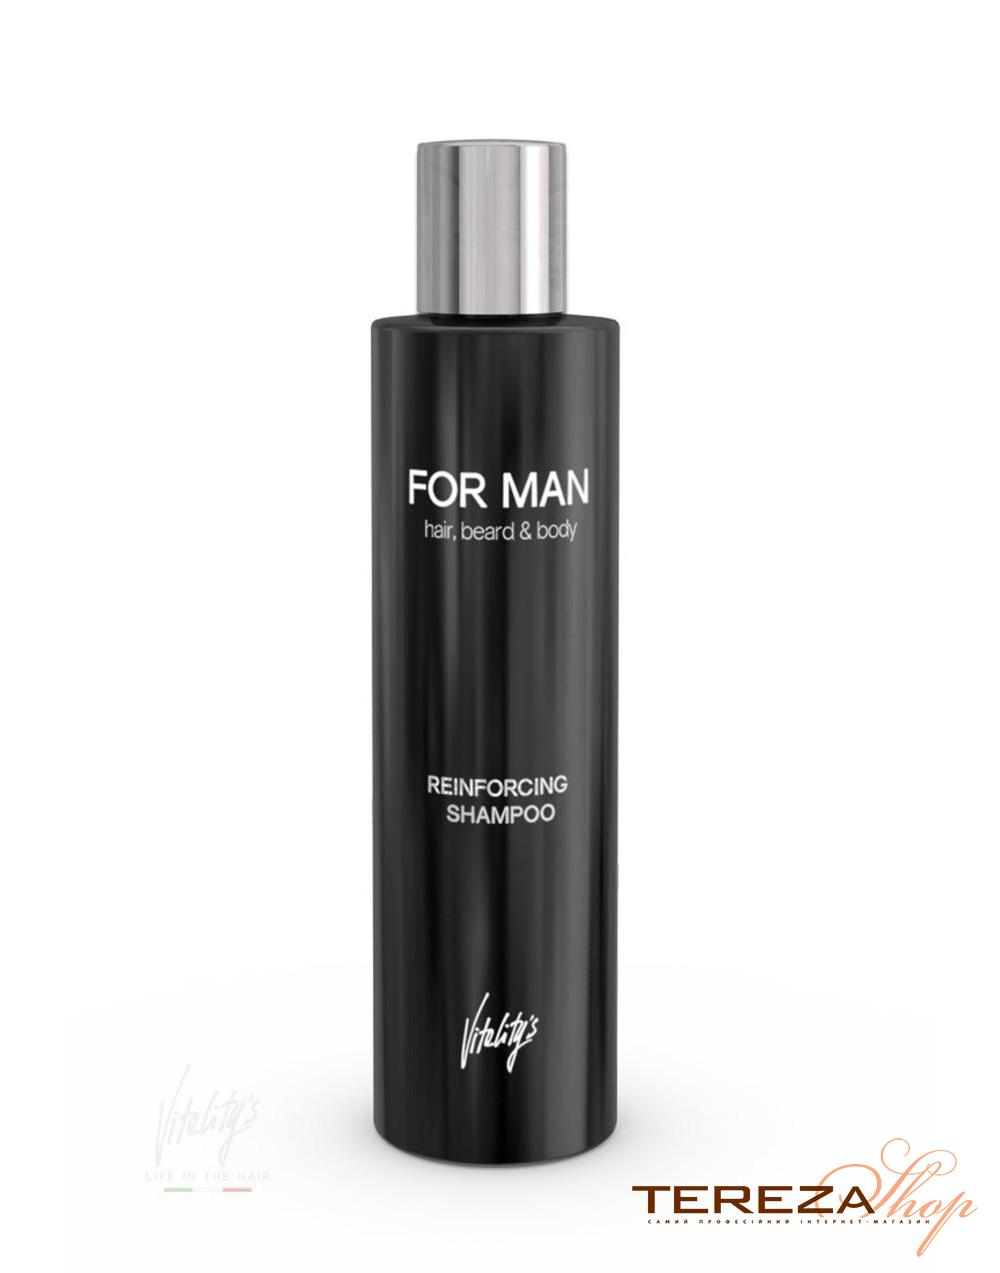 FOR MAN REINFORCING SHAMPOO VITALITY'S | Tereza Shop